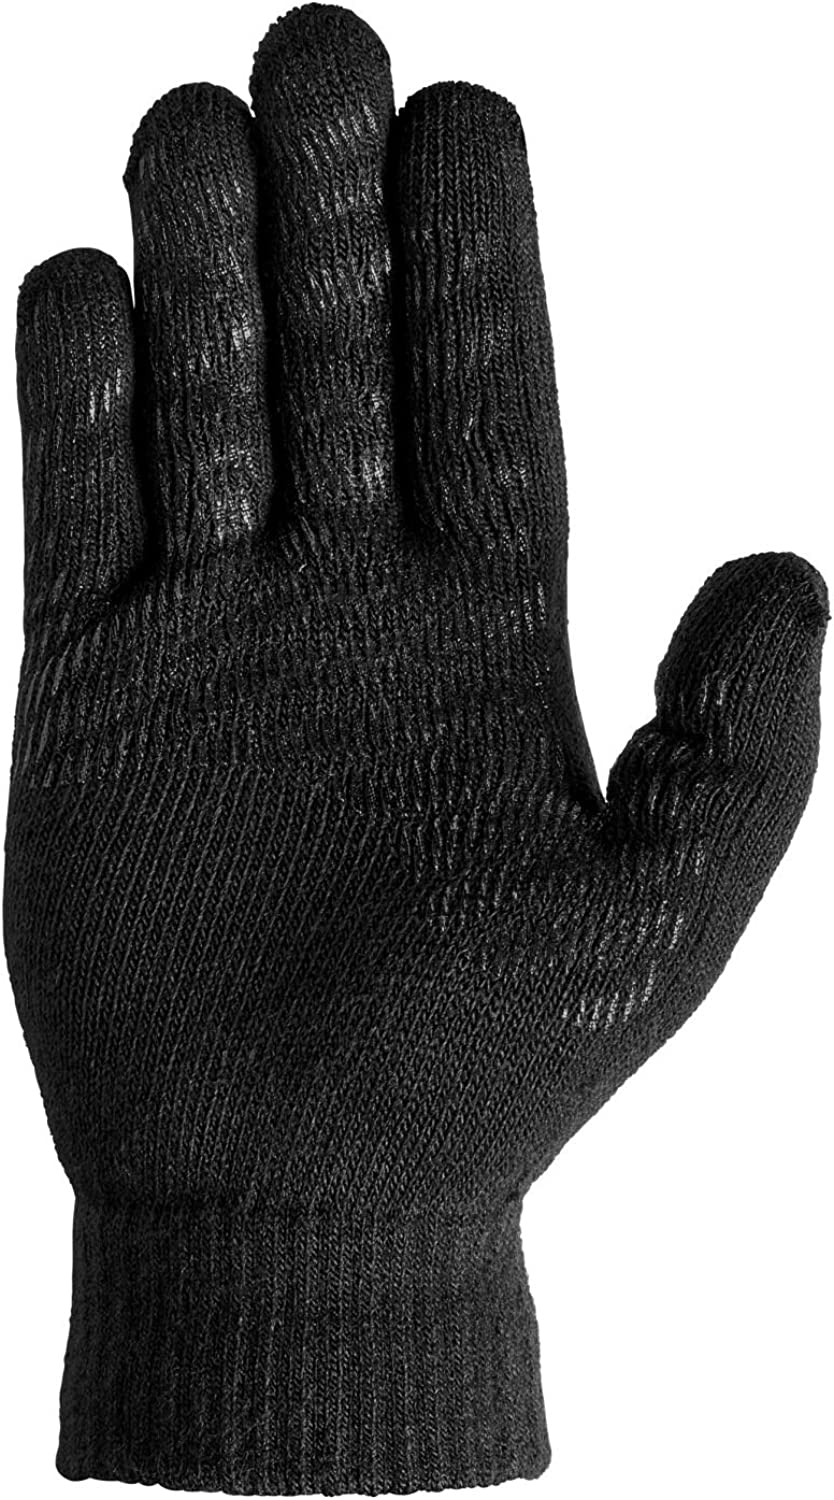 Nike Mens Knitted Tech Grip Gloves